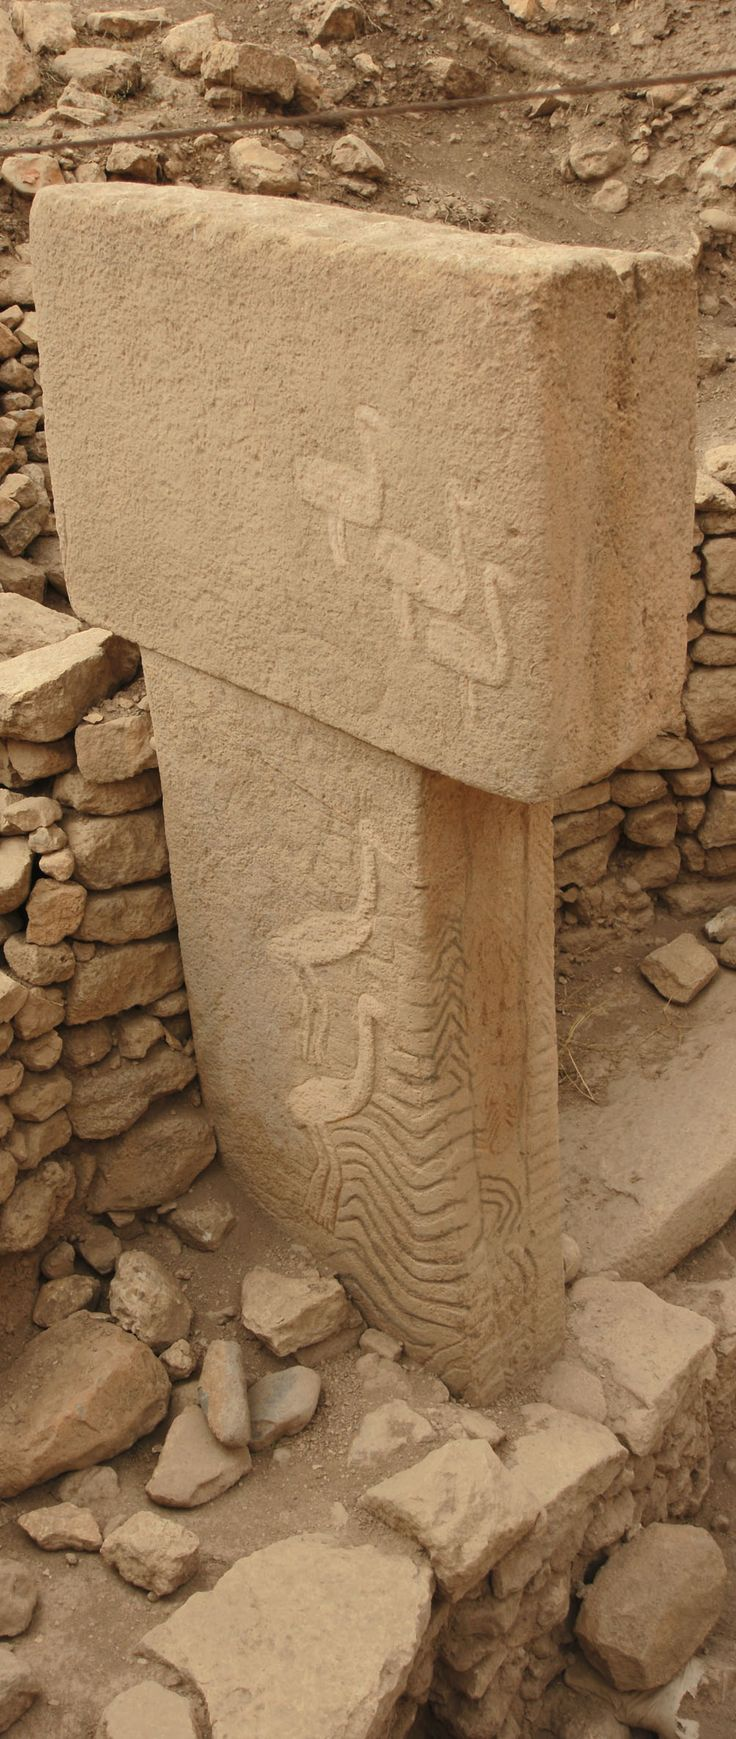 Göbeklitepe- Urfa, 9600 BC (11.600 years ago) photography: Erdinç Bakla (2012) - Watched History Chanel show on these last night.